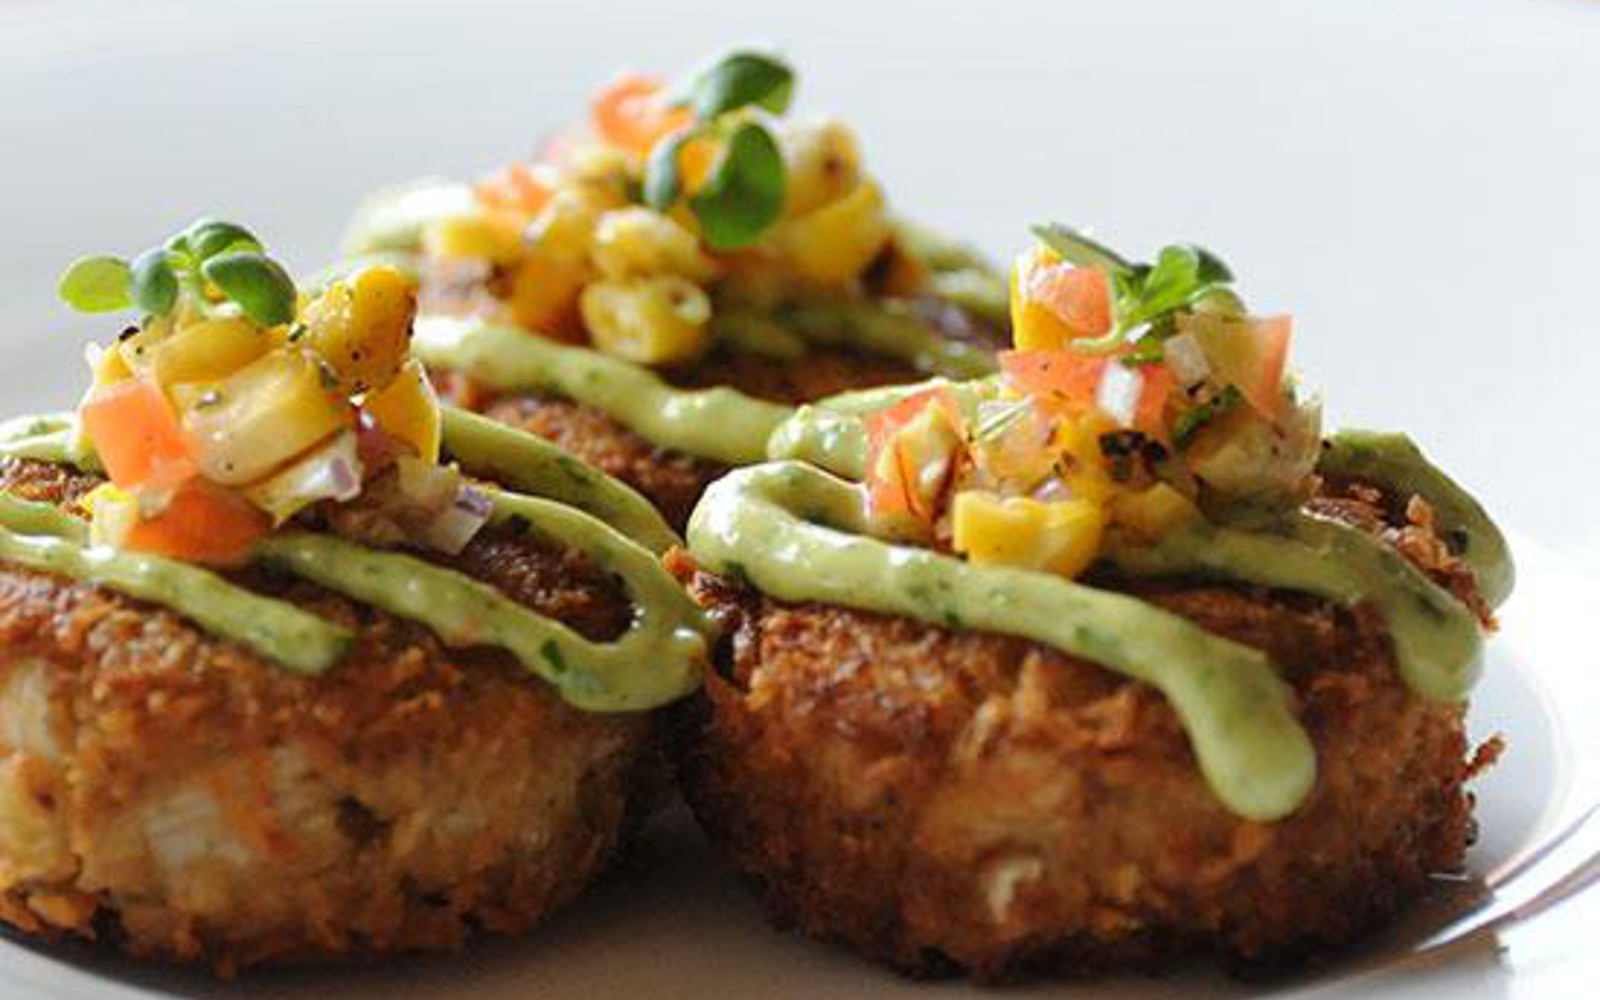 Vegan Crabcakes from Crossroads Kitchen in LA